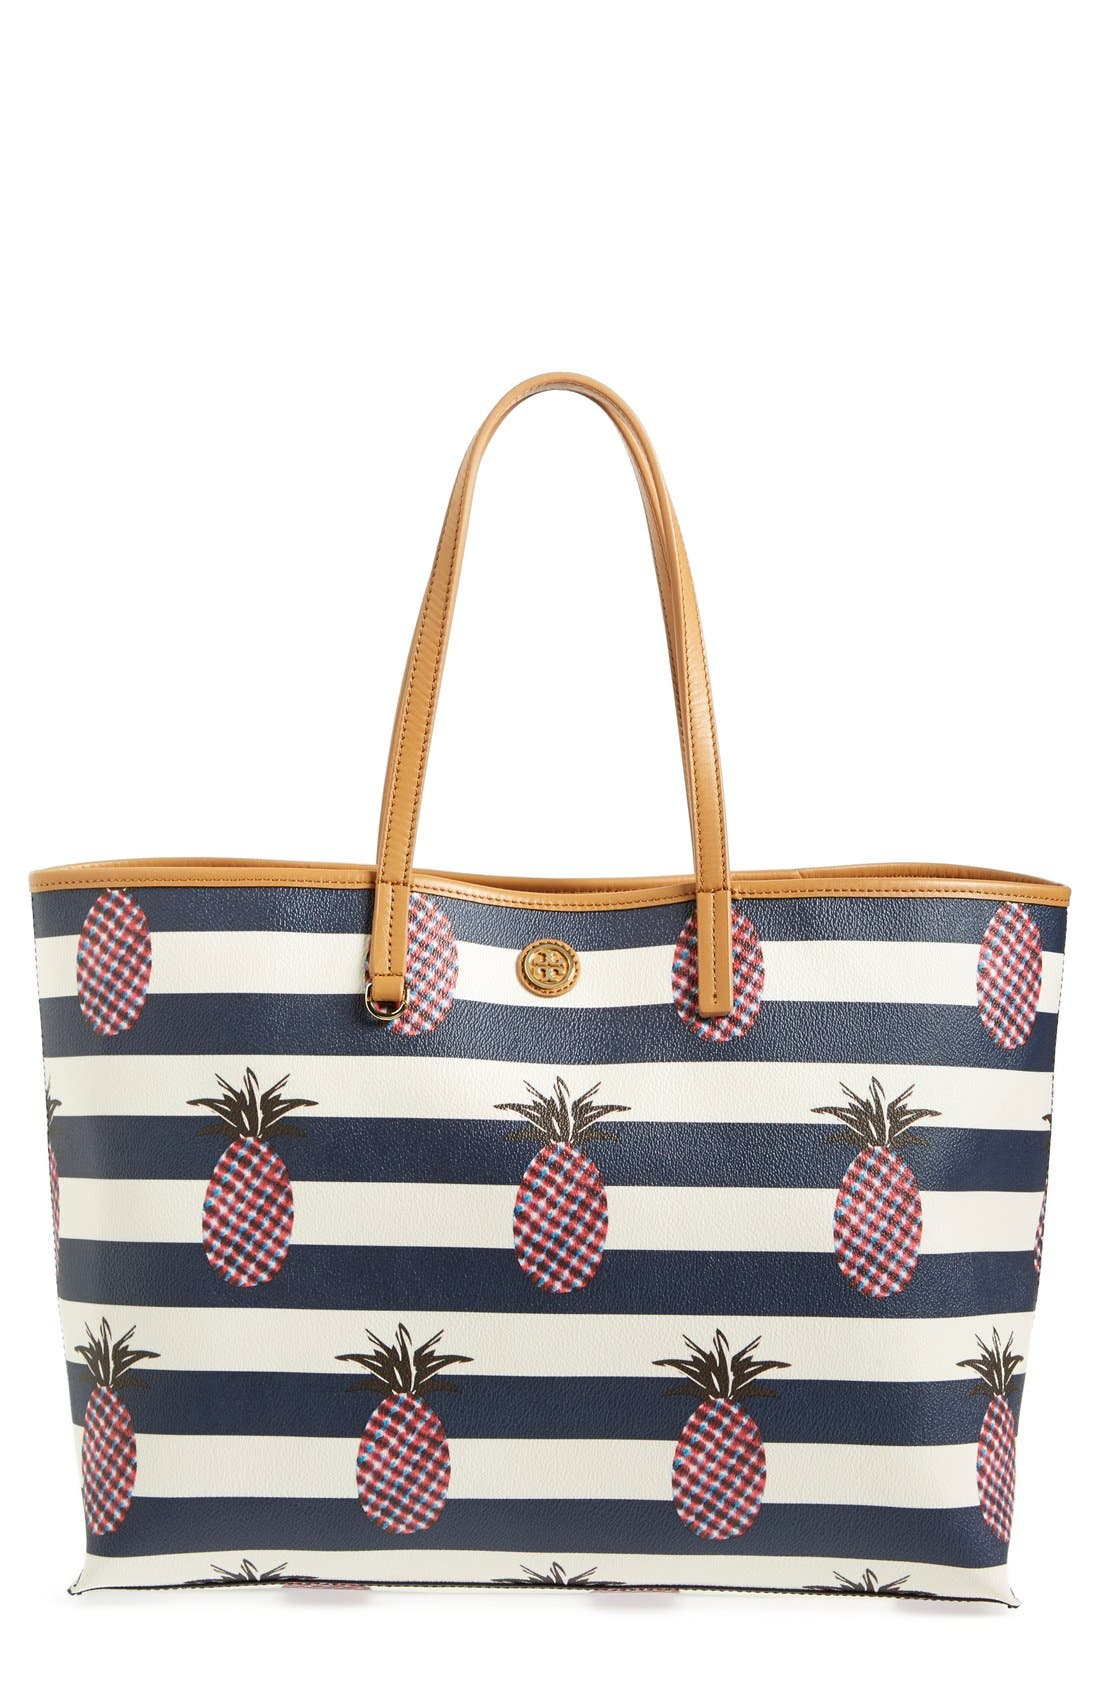 Alternate Image 1 Selected - Tory Burch 'Kerrington Square' Tote